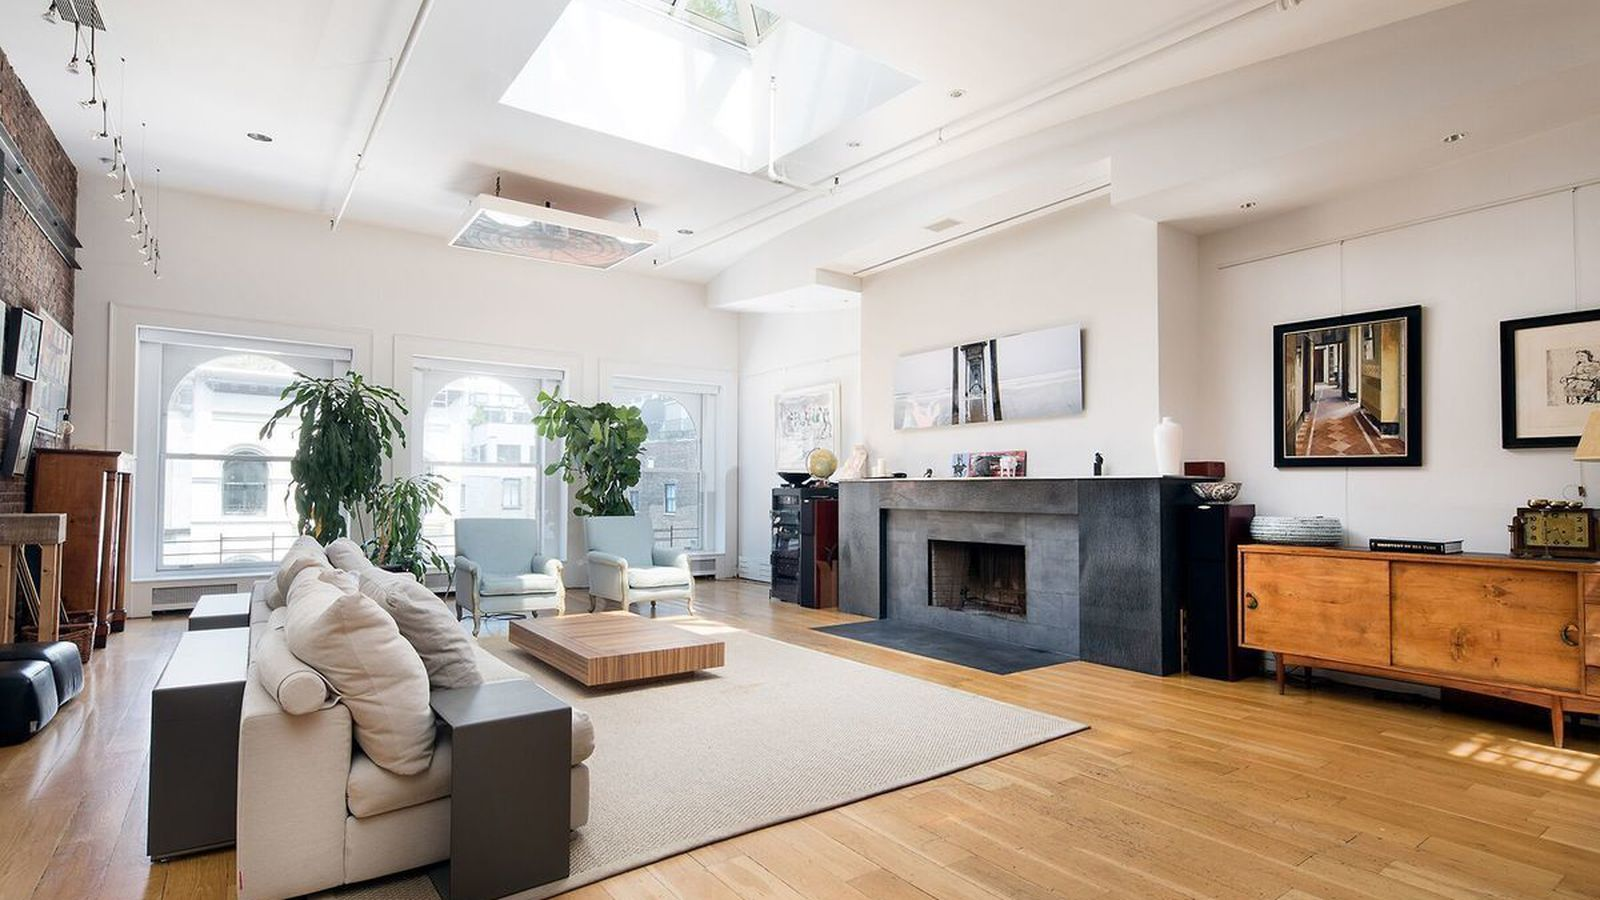 Duplex tribeca loft with lush private roof deck seeks 12m for Tribeca loft for sale